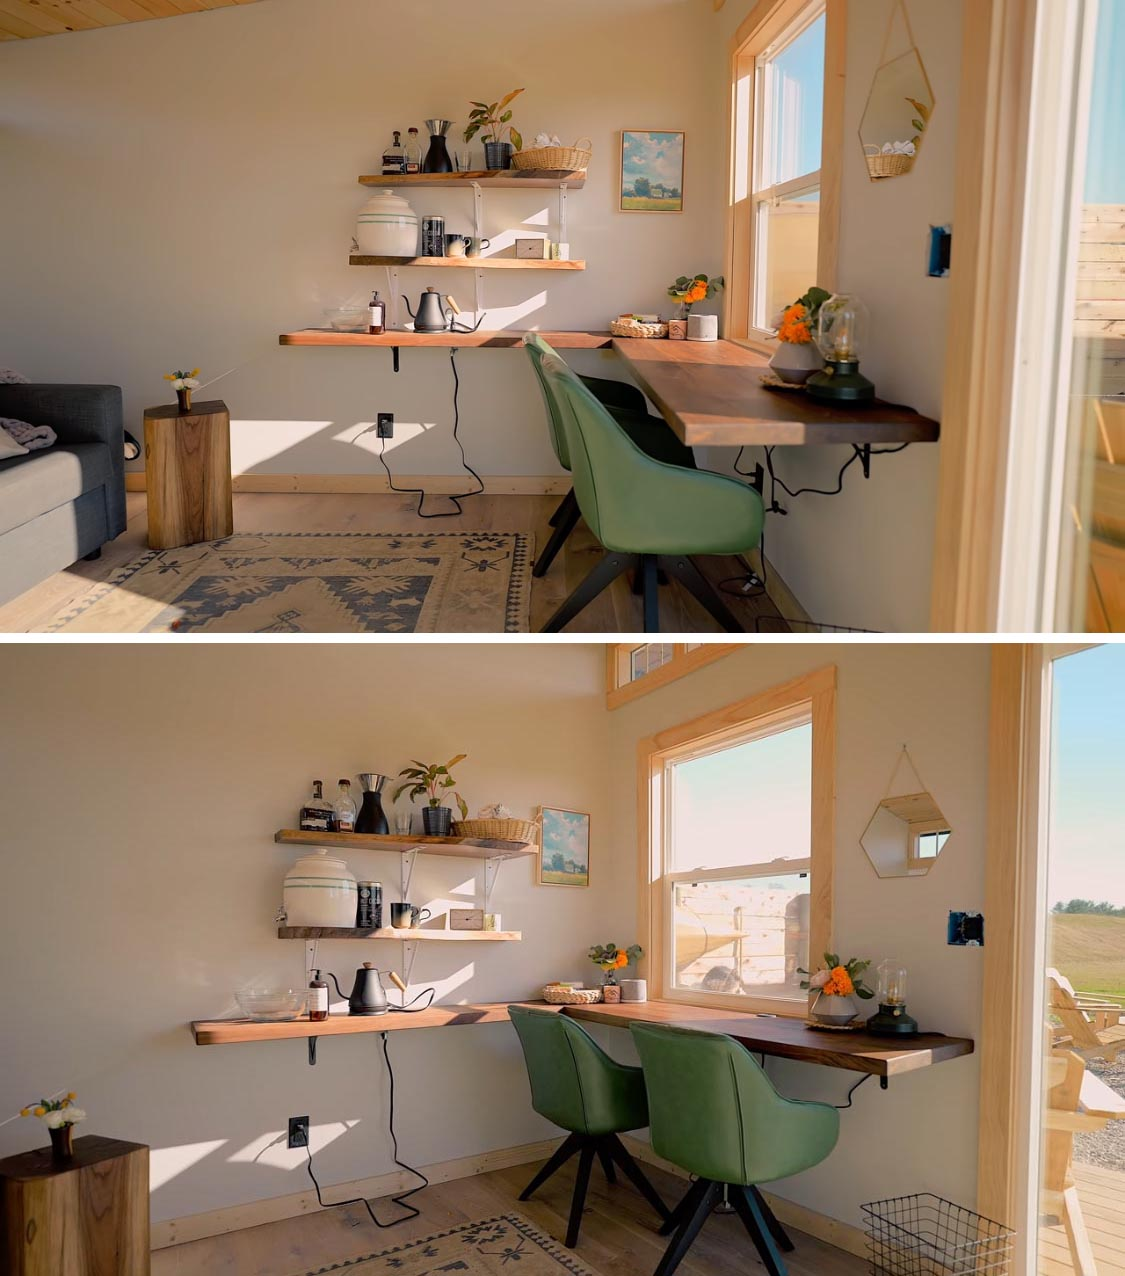 A modern tiny house with a single room, that can be used as a guest suite or home office, and is furnished with a pull-out sofa and a desk.